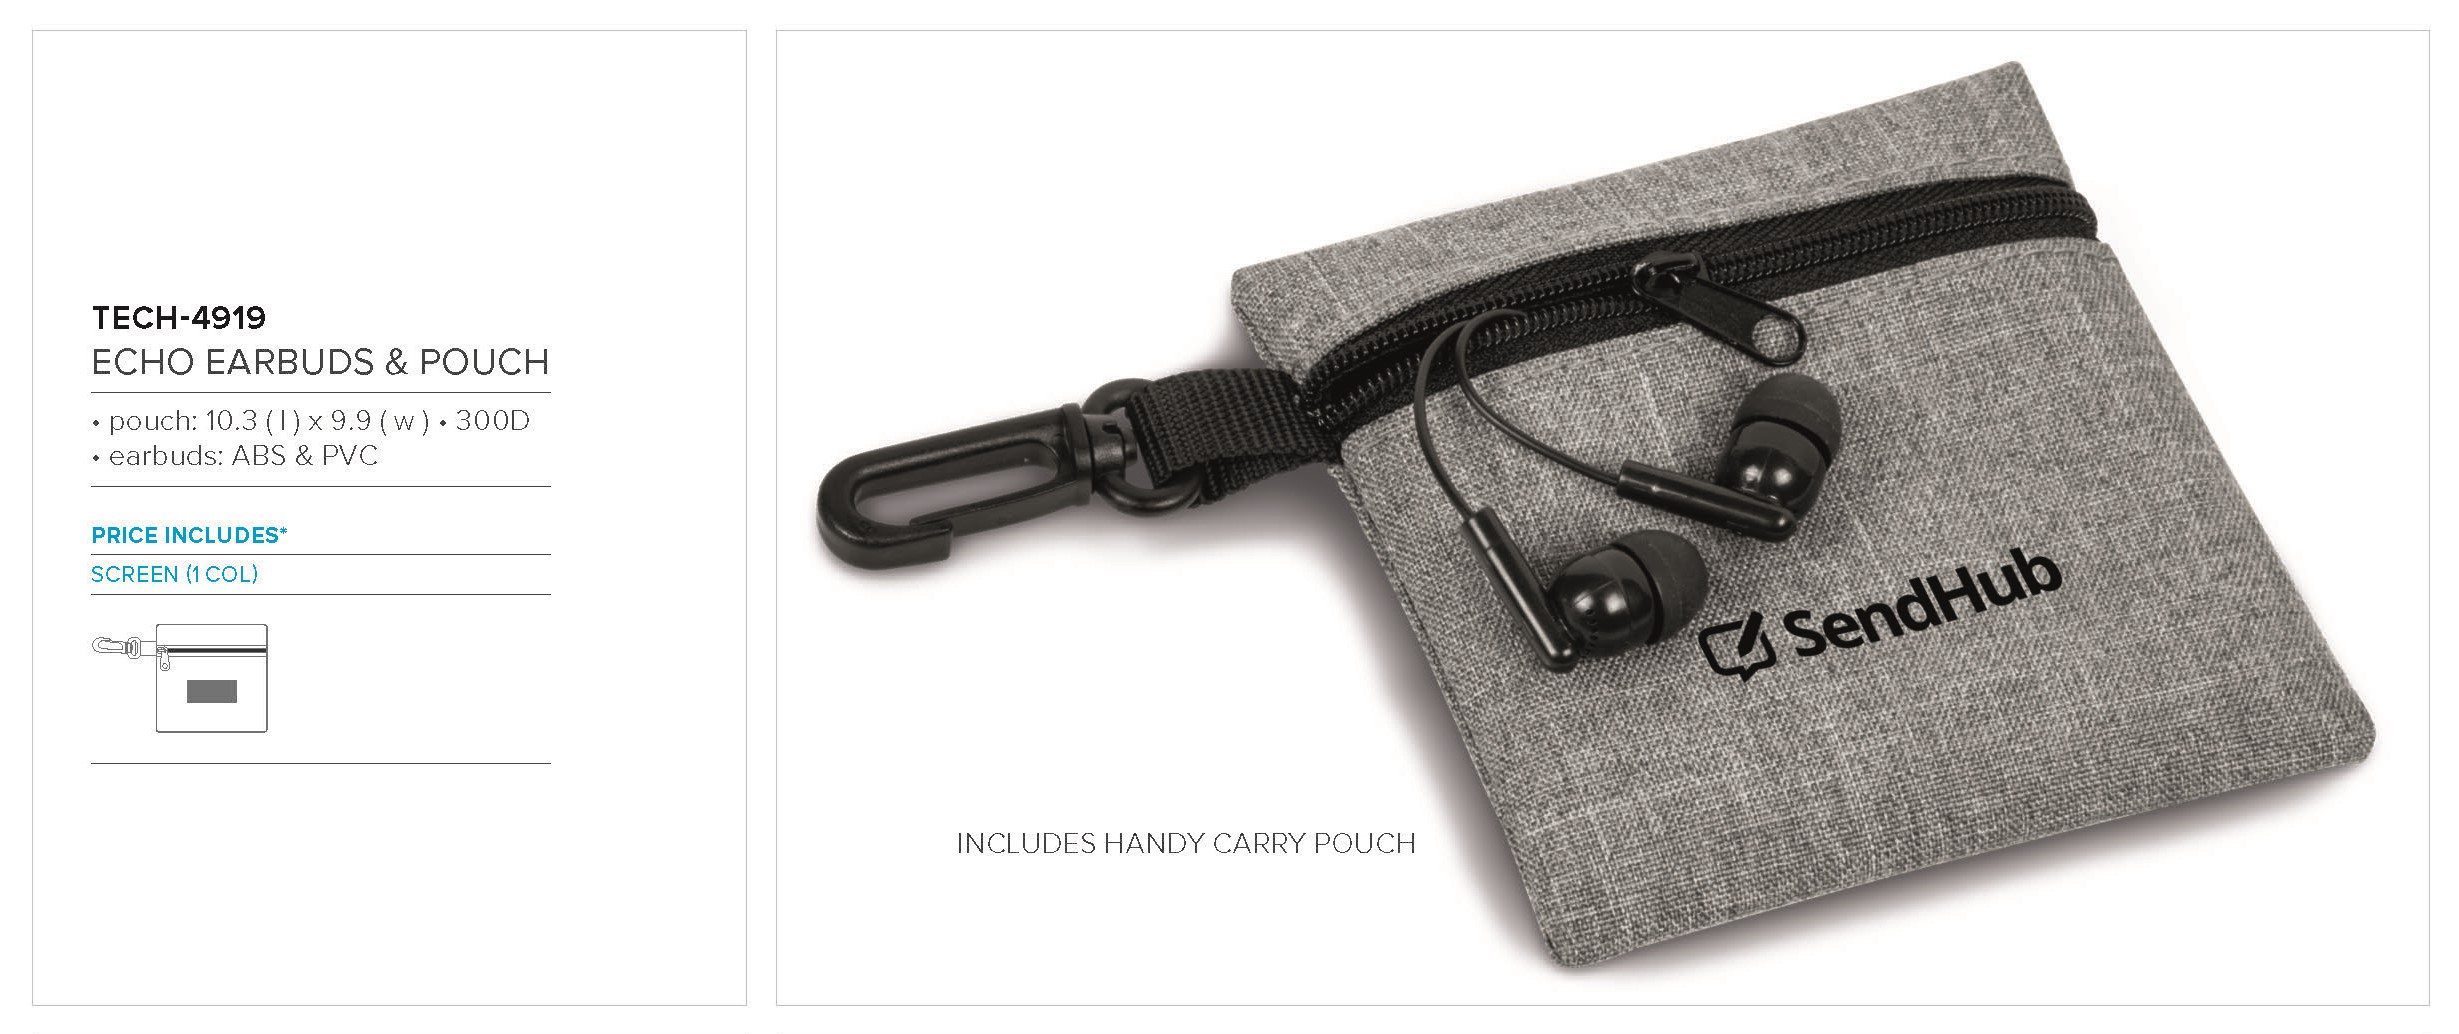 Echo Earbuds & Pouch